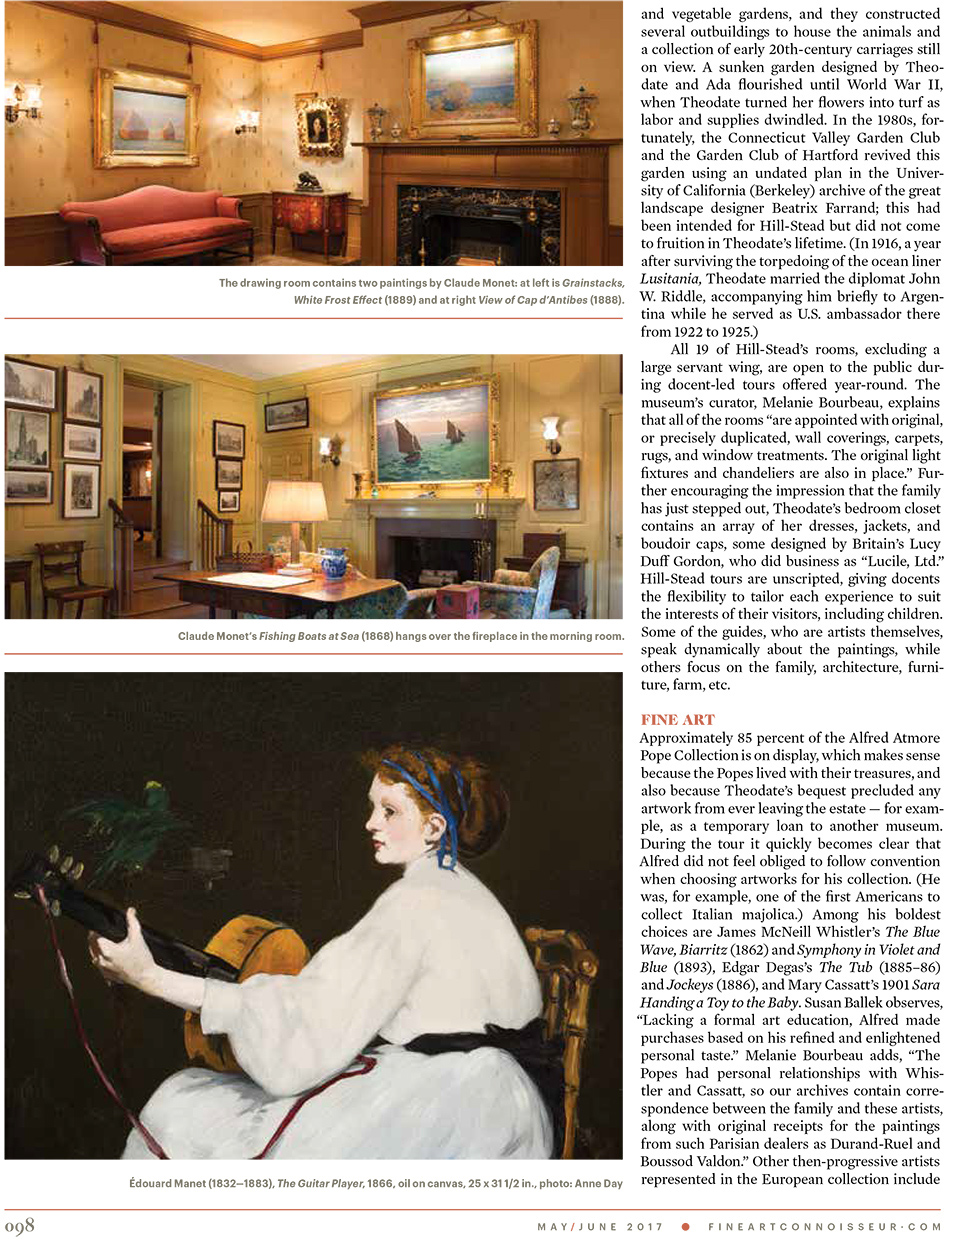 Fine-Art-Connoisseur-Magazine-Hill-Stead-Museum